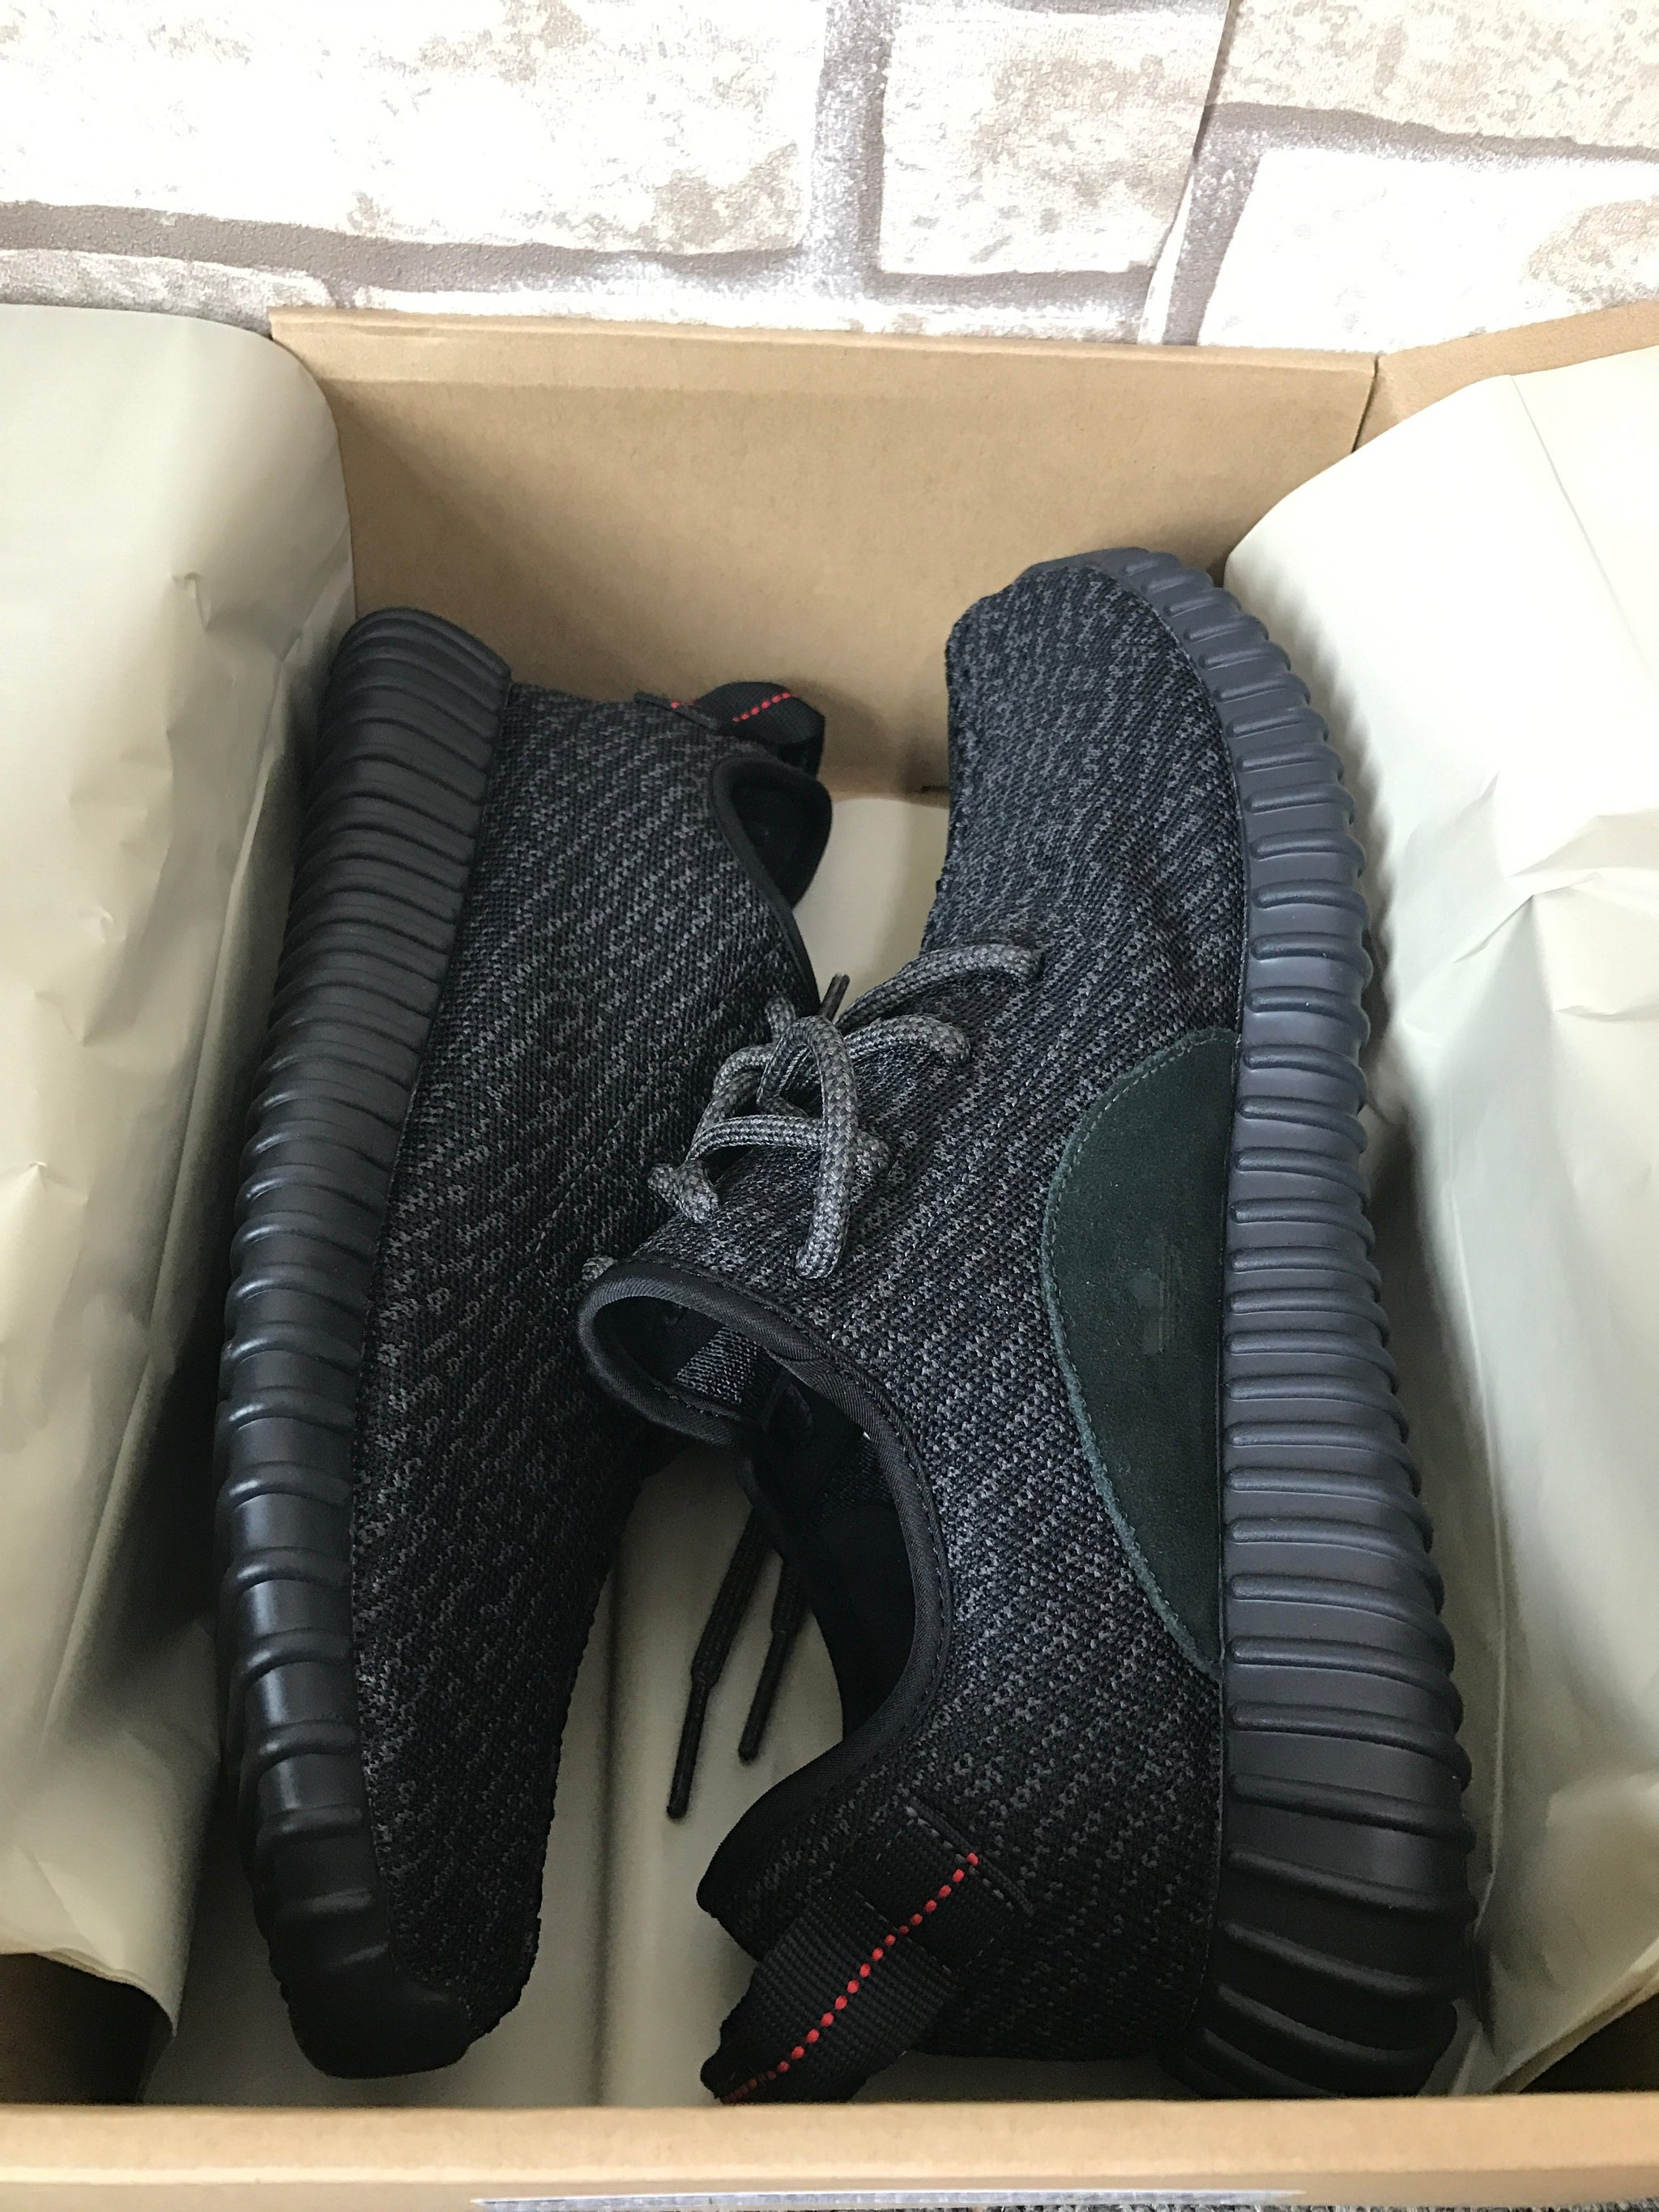 3daf128e8a0 Yeezy Boost 350 - Pirate Black - The-Hype-Snob